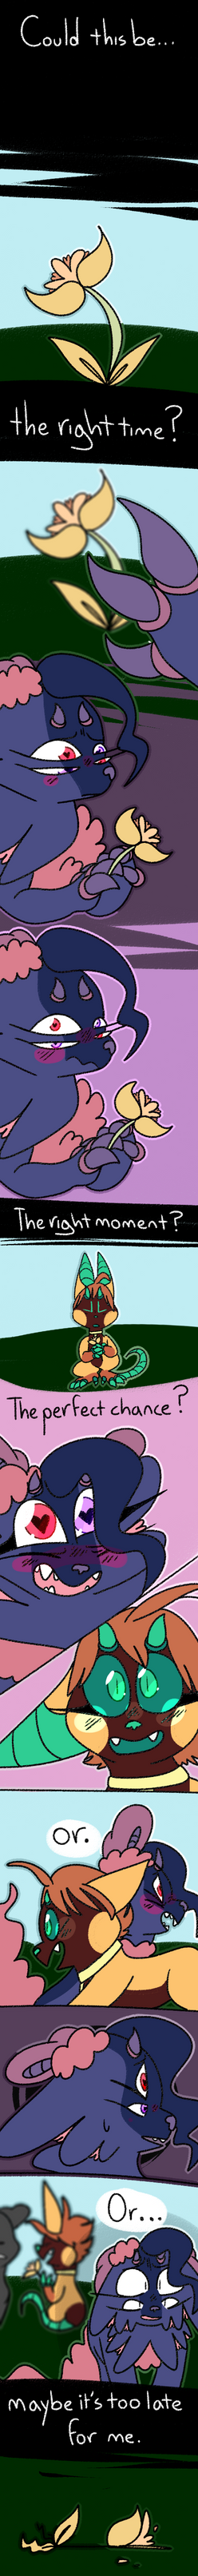 Could it be..? by Tokaliz